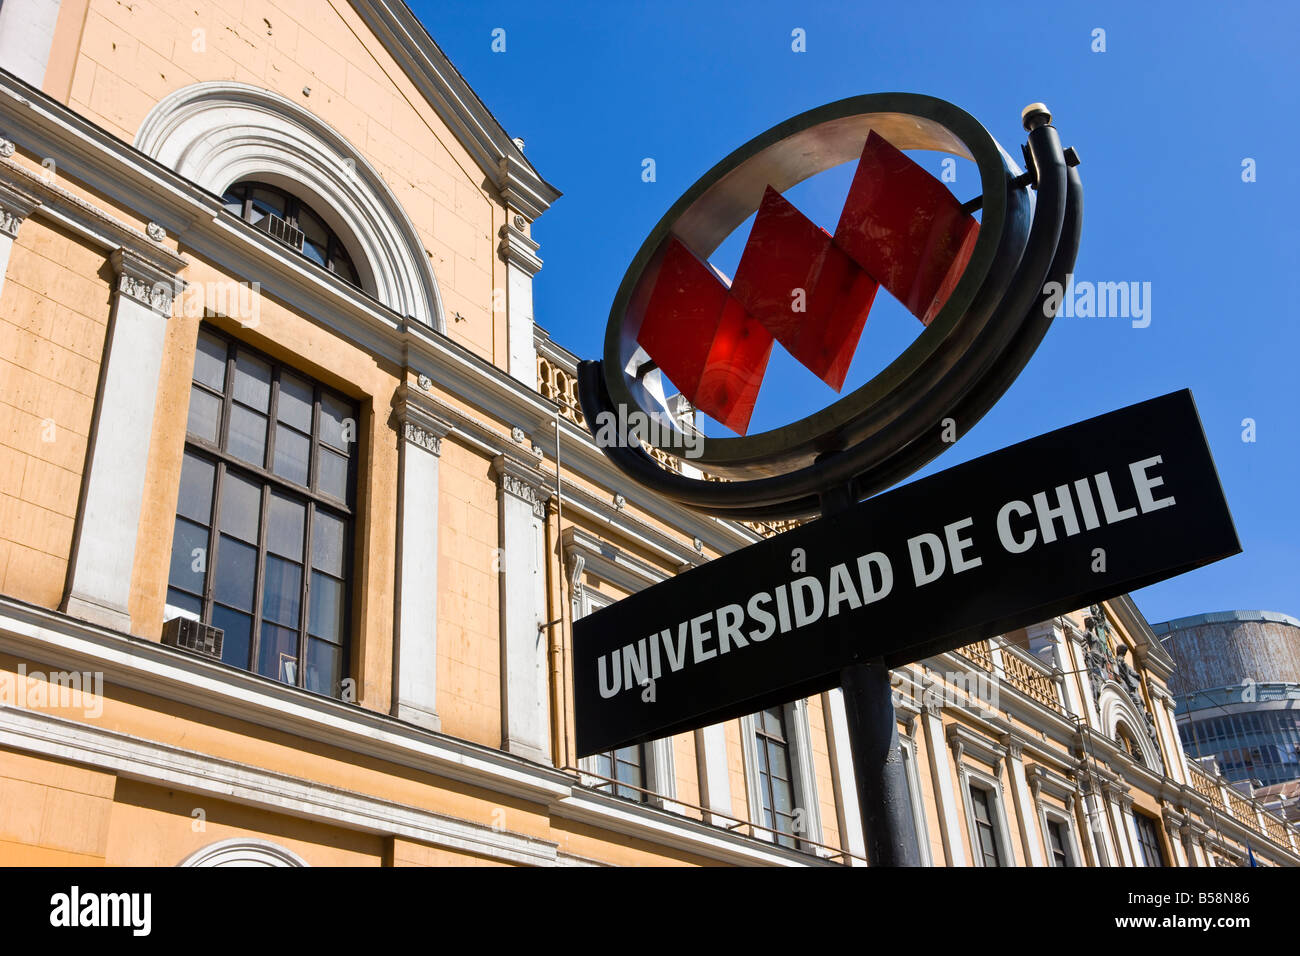 University of Chile (Universidad de Chile) and Metro sign, Santiago, Chile, South America - Stock Image